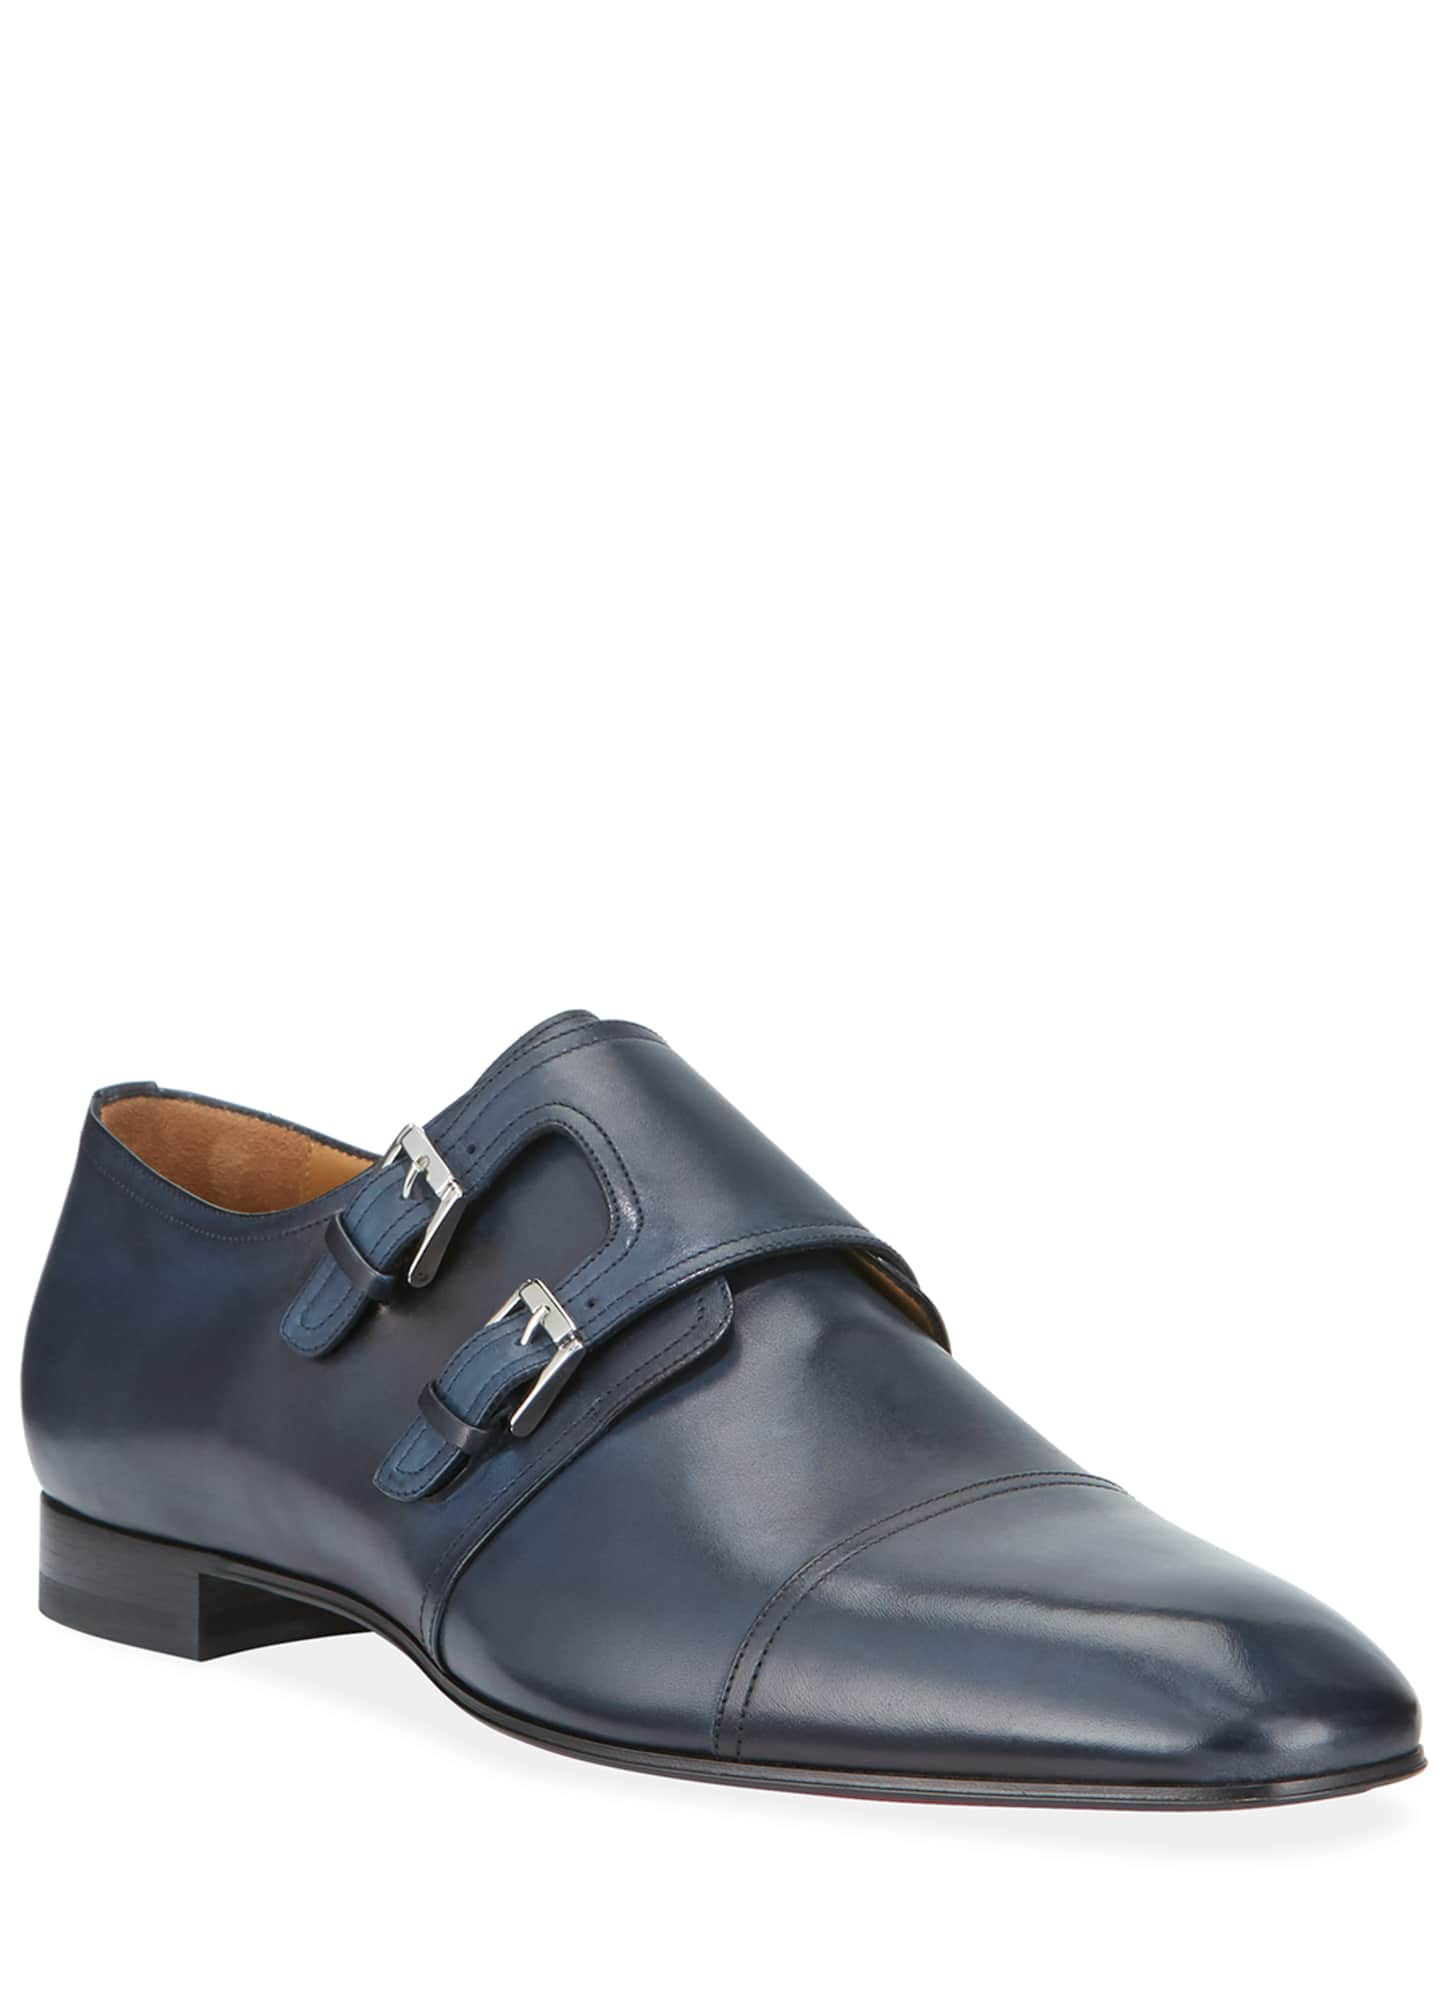 Christian Louboutin Men's Mortimer Double-Monk Red Sole Loafers